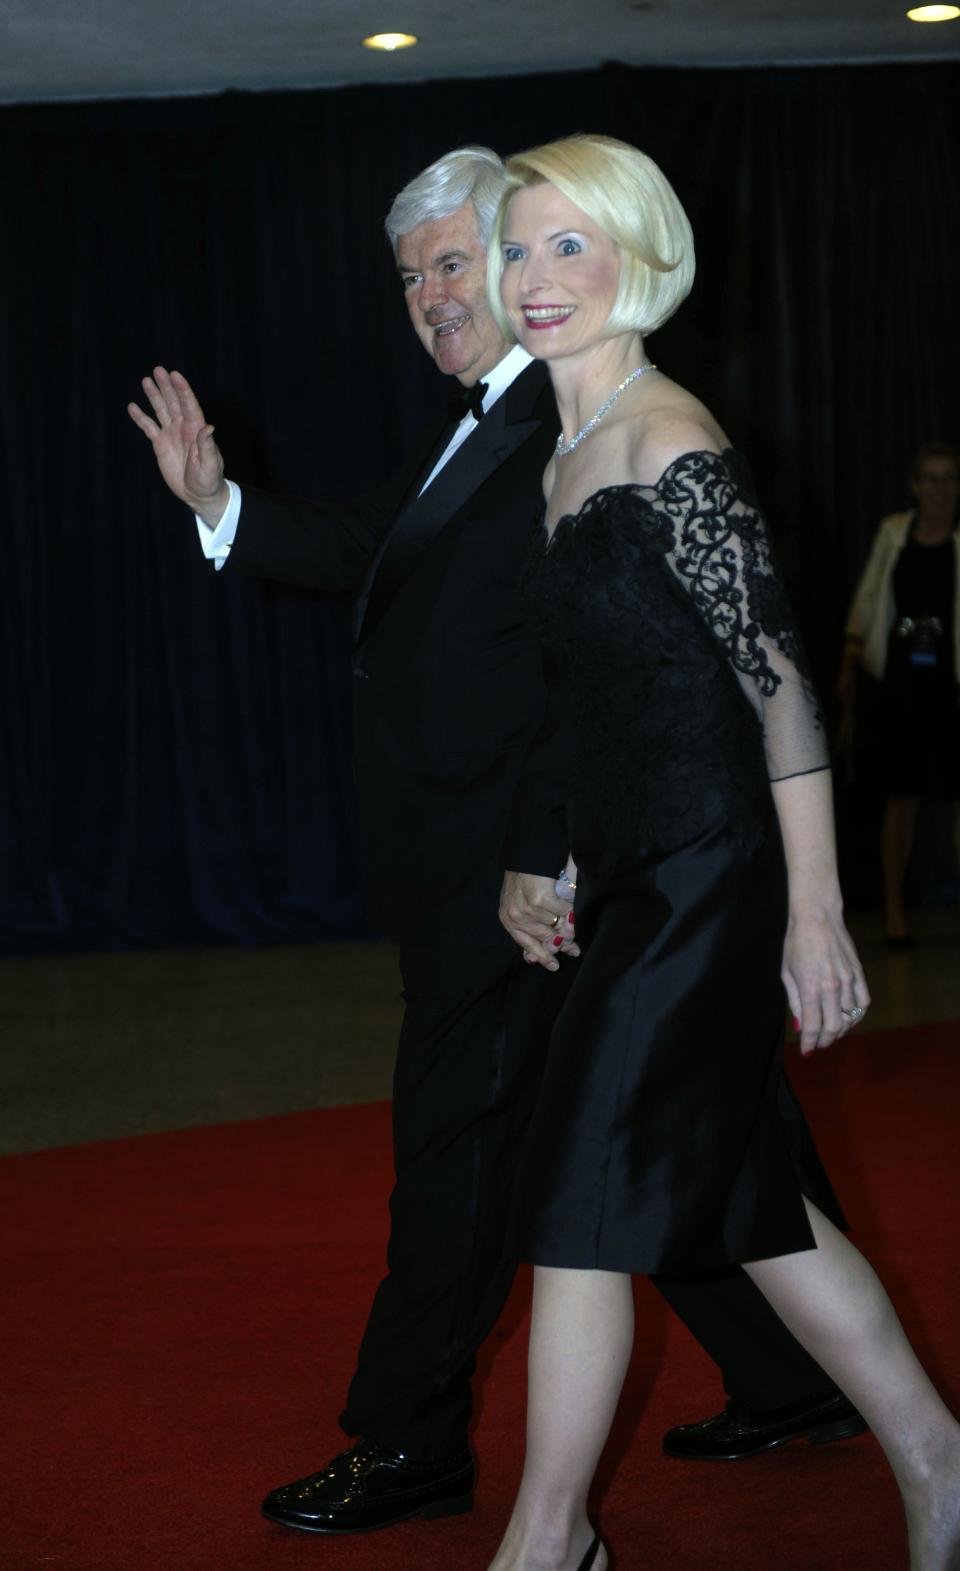 Newt and Callista Gingrich arrive at the White House Correspondents' Association Dinner on Saturday, April 28, 2012 in Washington.  (AP Photo/Kevin Wolf)